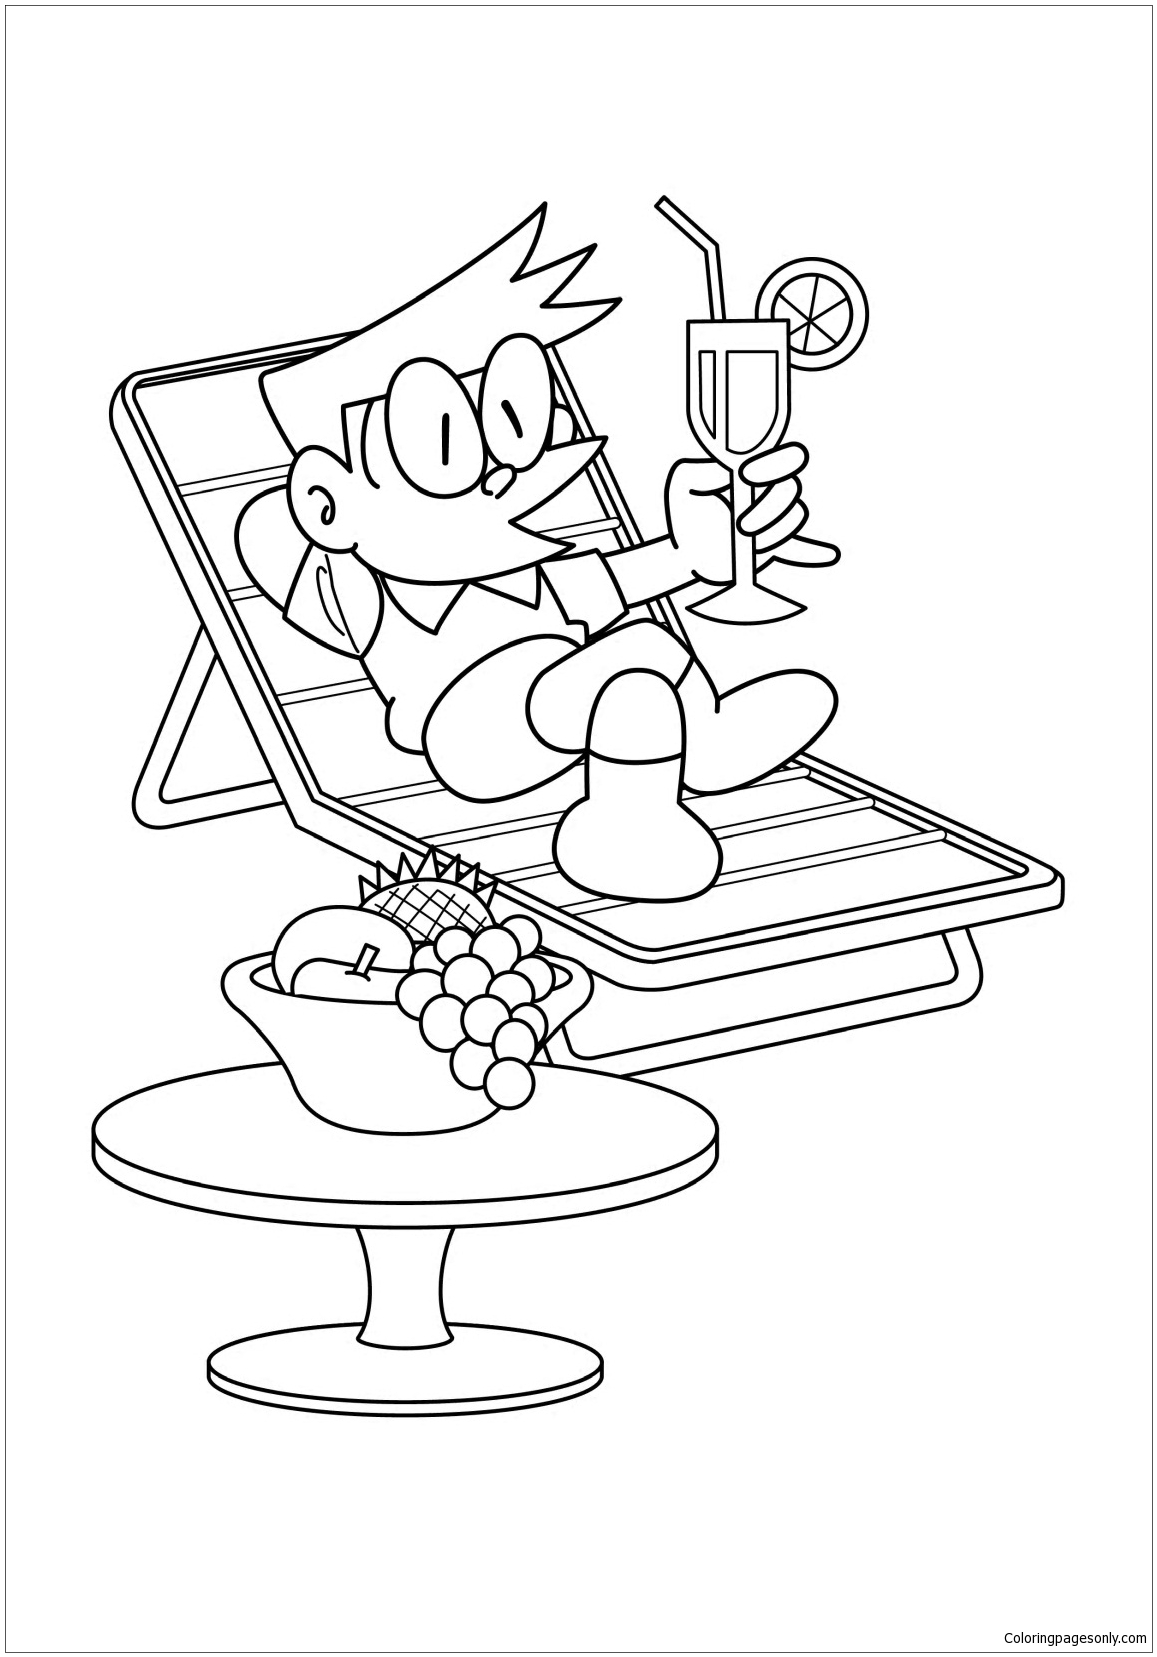 Suneo Are Relaxing Coloring Page Free Coloring Pages Online